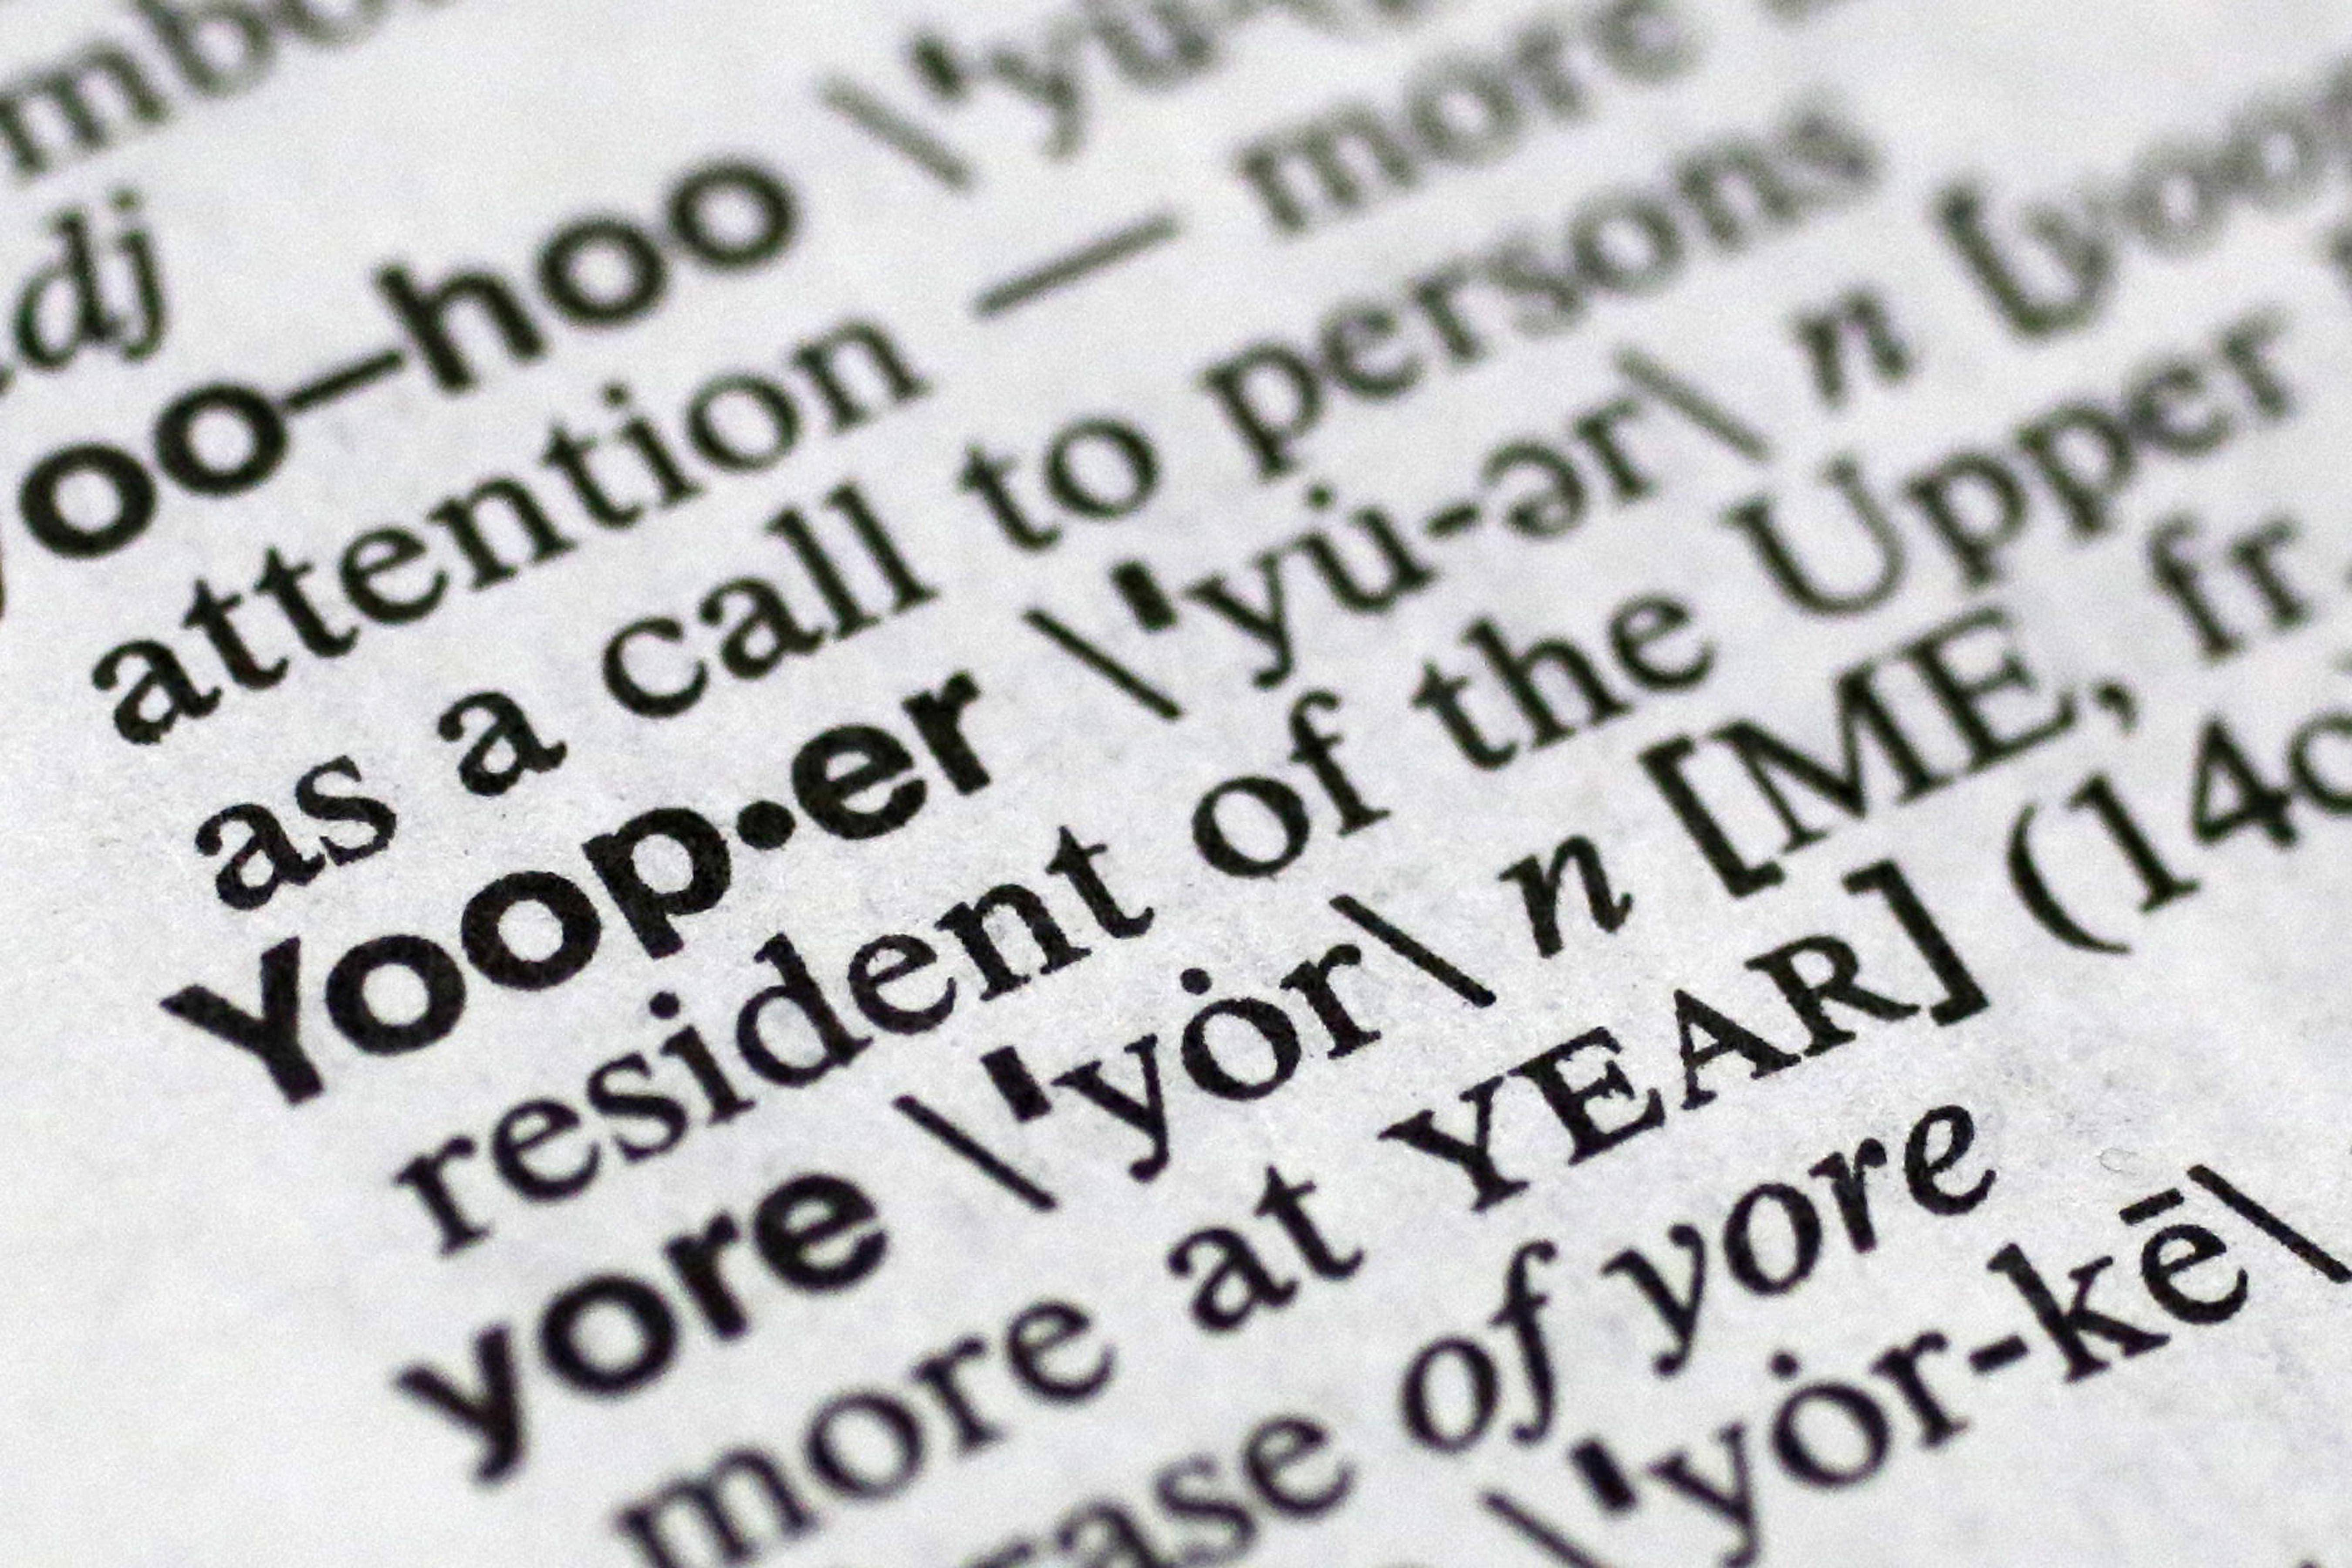 """Yooper"" is one of the 150 new words appearing in Merriam-Webster's Collegiate Dictionary and the company's free online database. The term refers to native or longtime residents of the Michigan's Lake Superior region known for a distinctive manner of speaking and its Scandinavian roots."